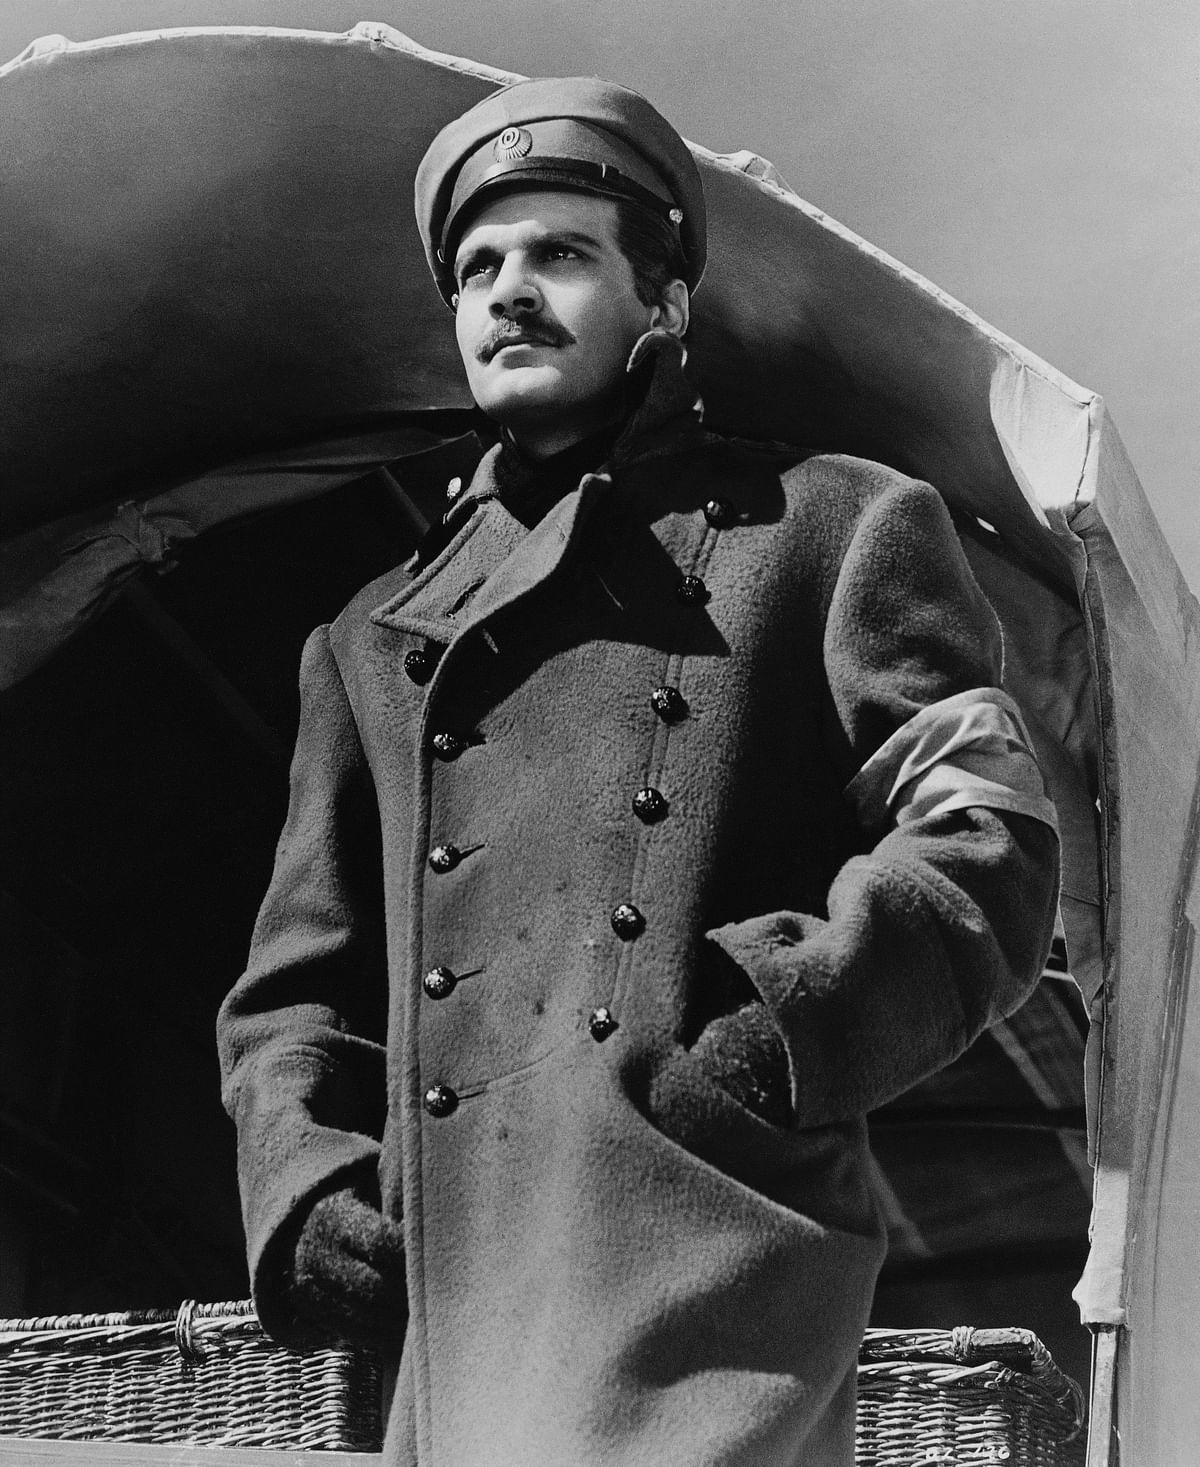 1965 file photo from Metro Goldwyn-Mayer shows actor Omar Sharif, in the movie based on Boris Pasternak' s Doctor Zhivago location unknown. (Photo: AP)